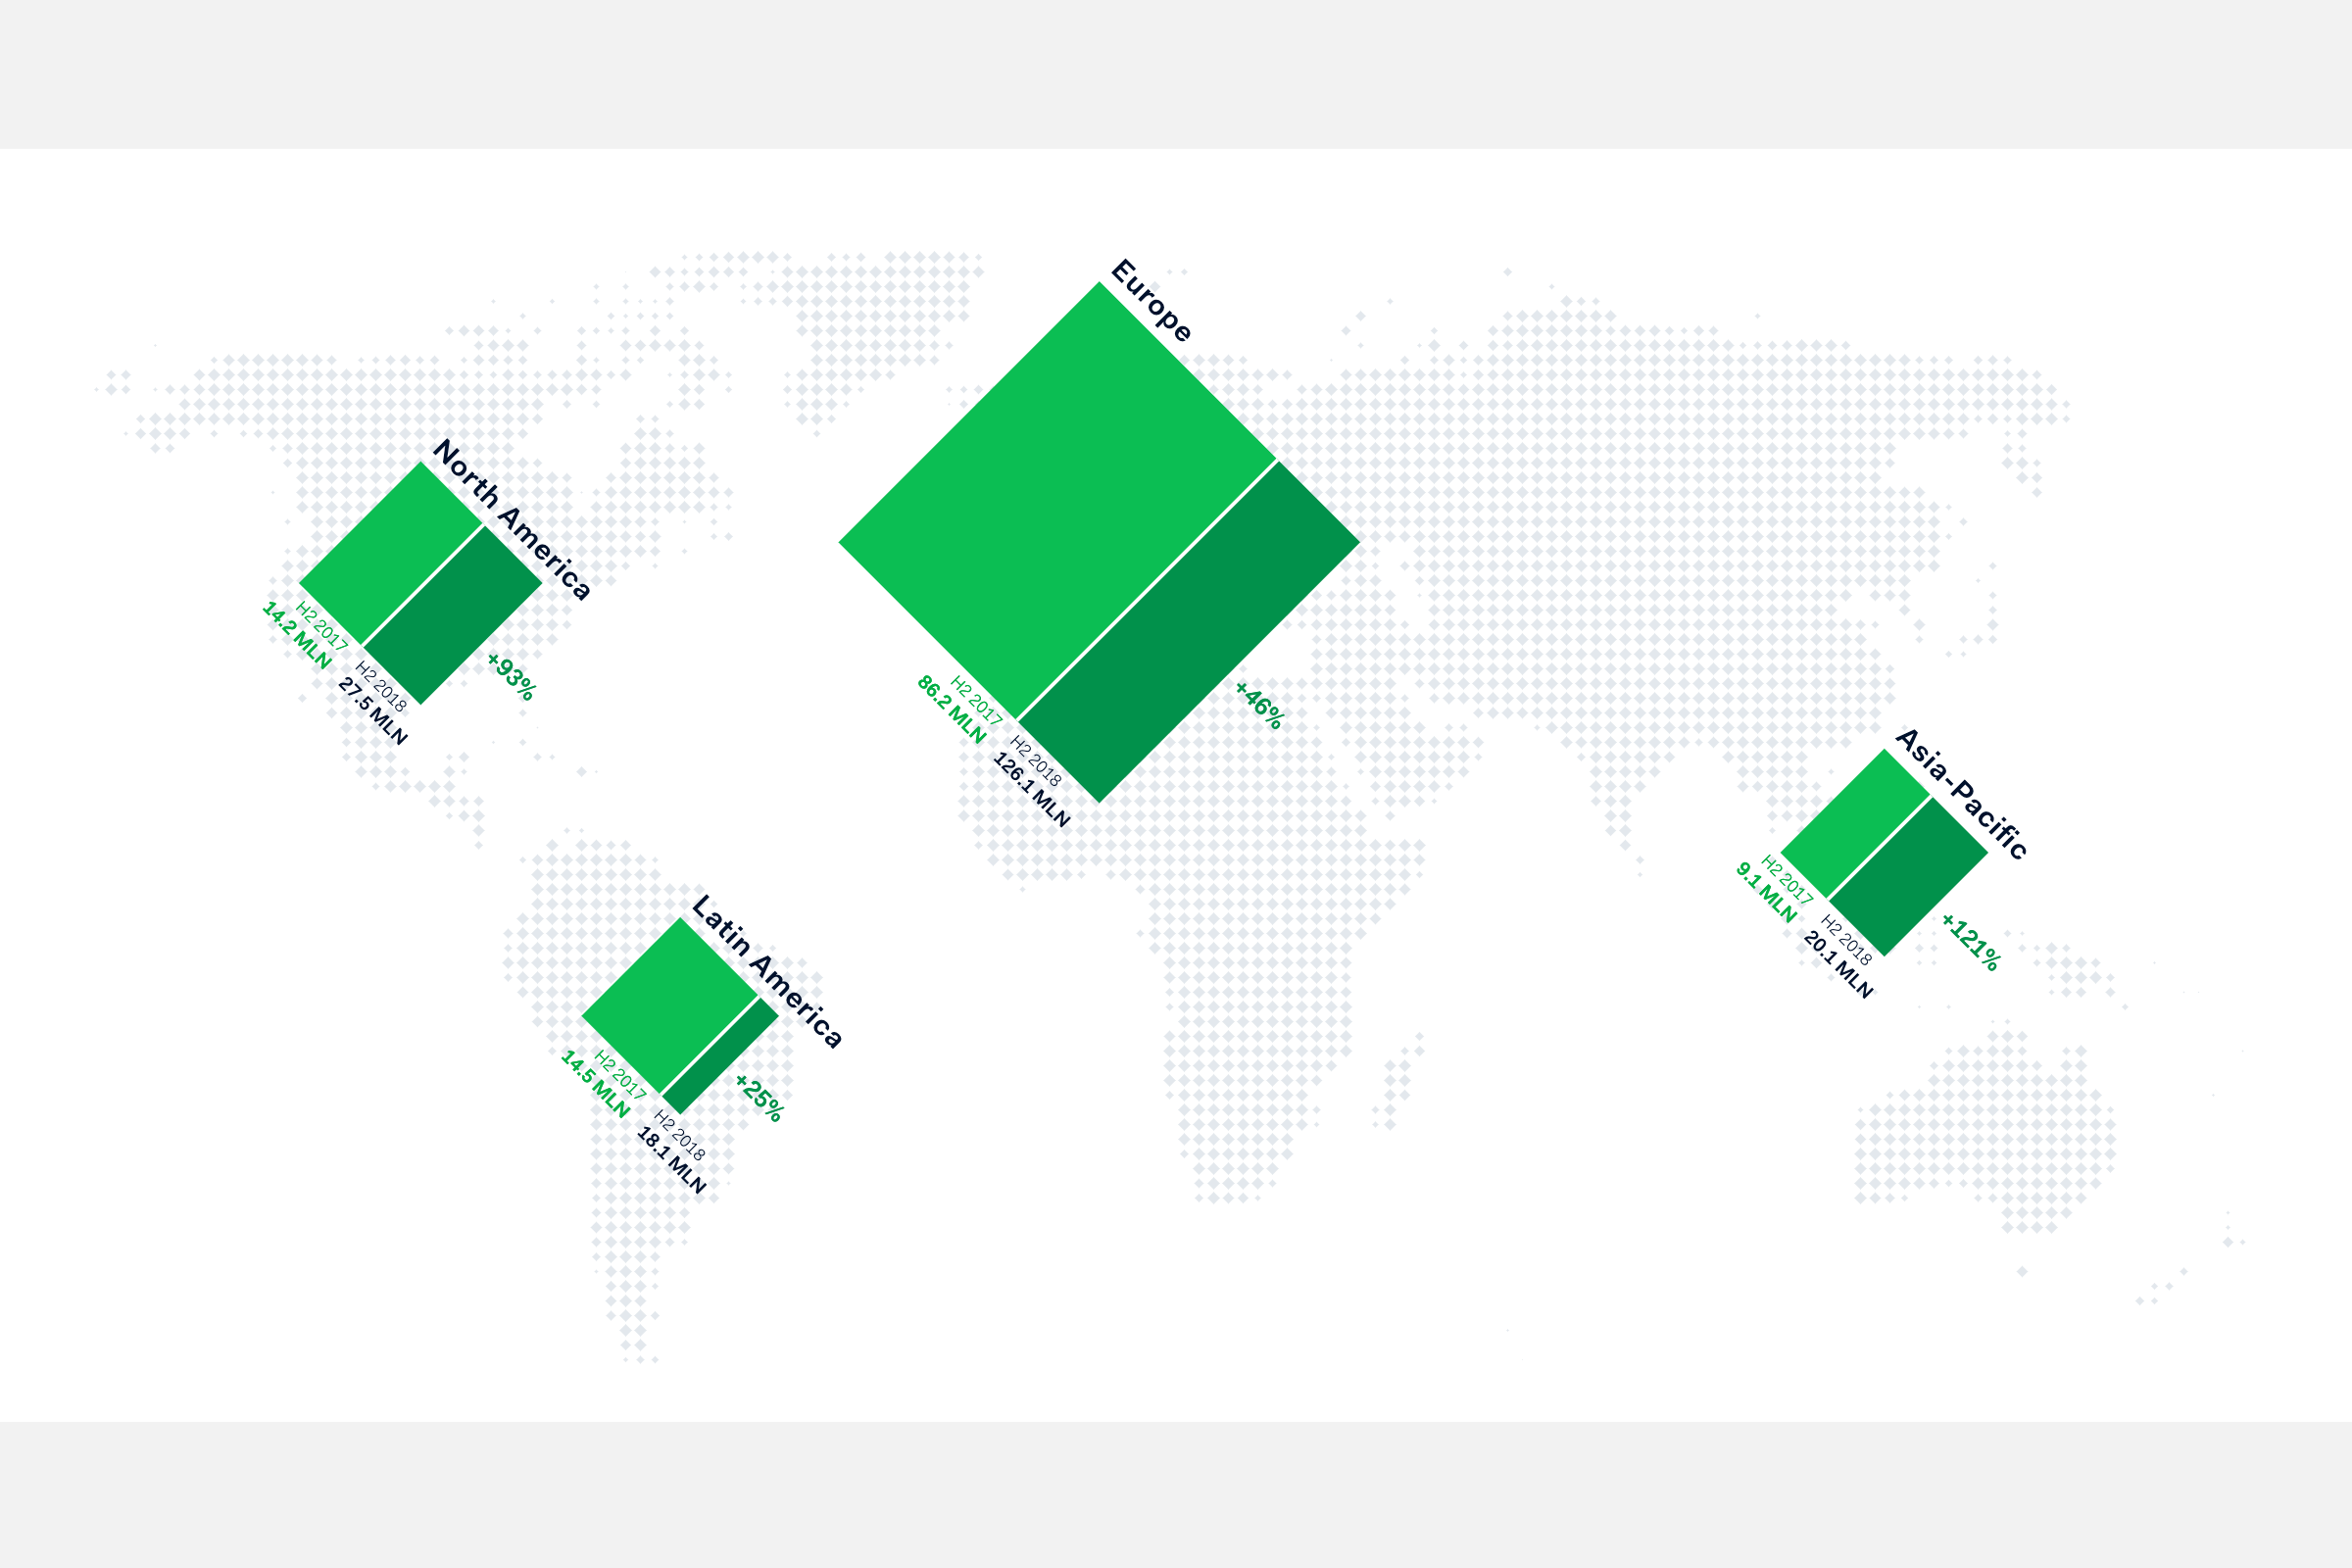 The map with icons that represent the revenue growth per region